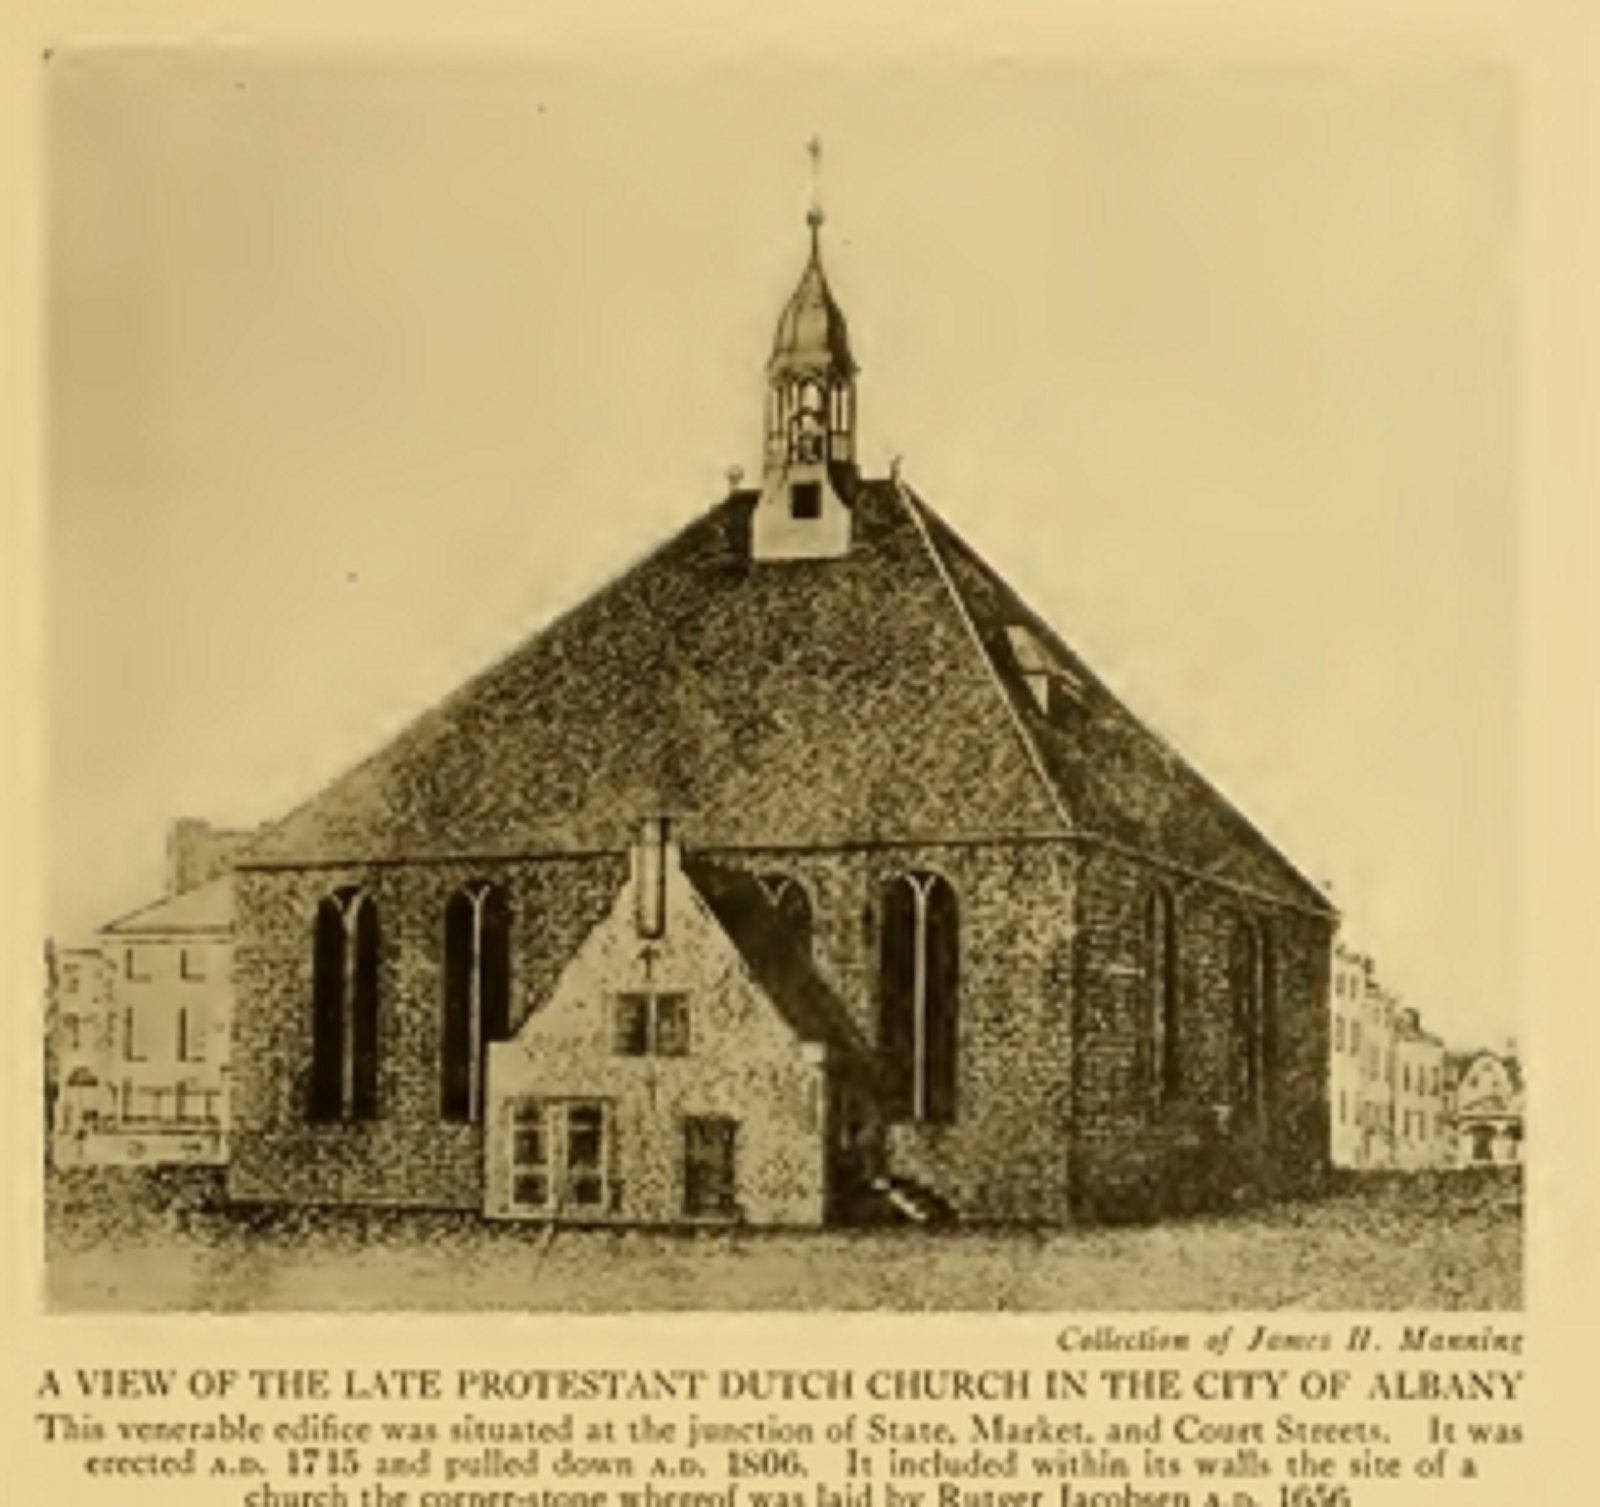 The first dutch chirch in albany NY .. at state,. market